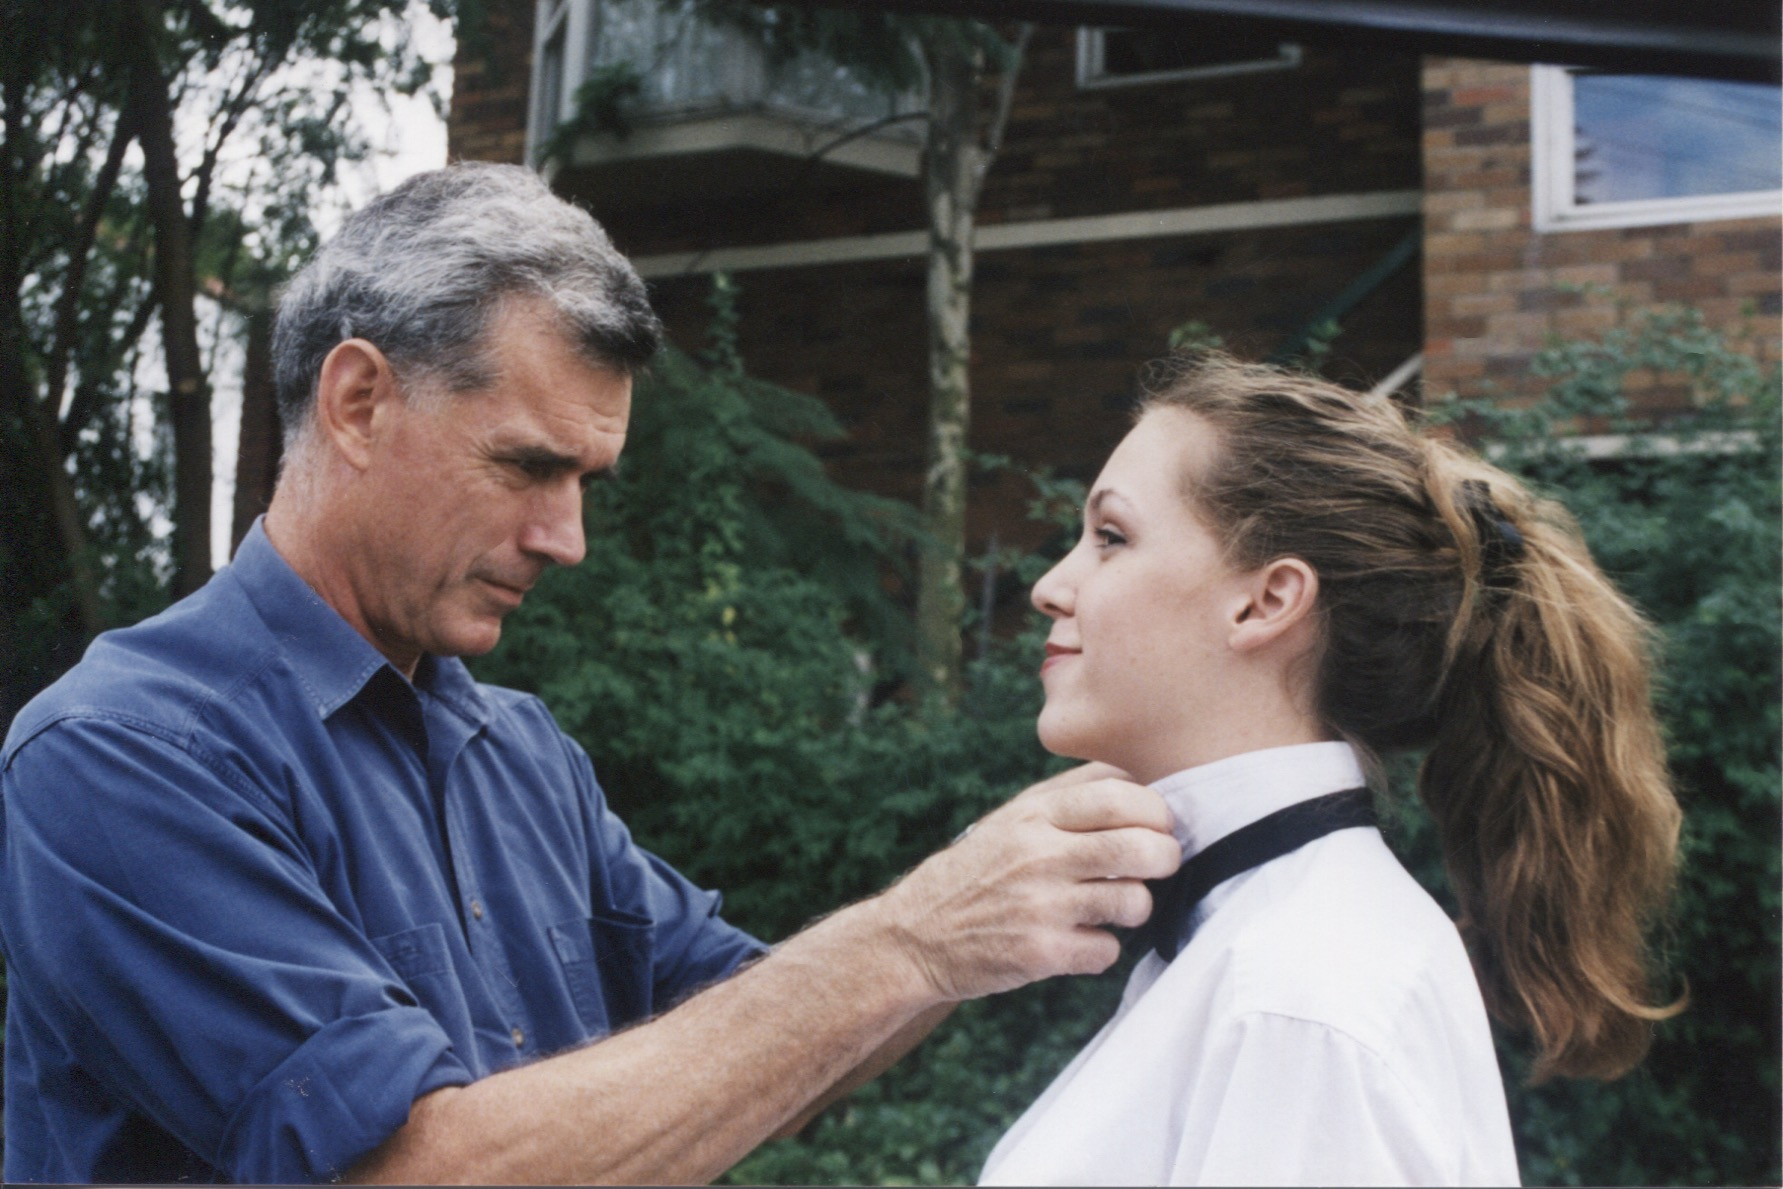 Andy teaching Sophie to tie a bow tie